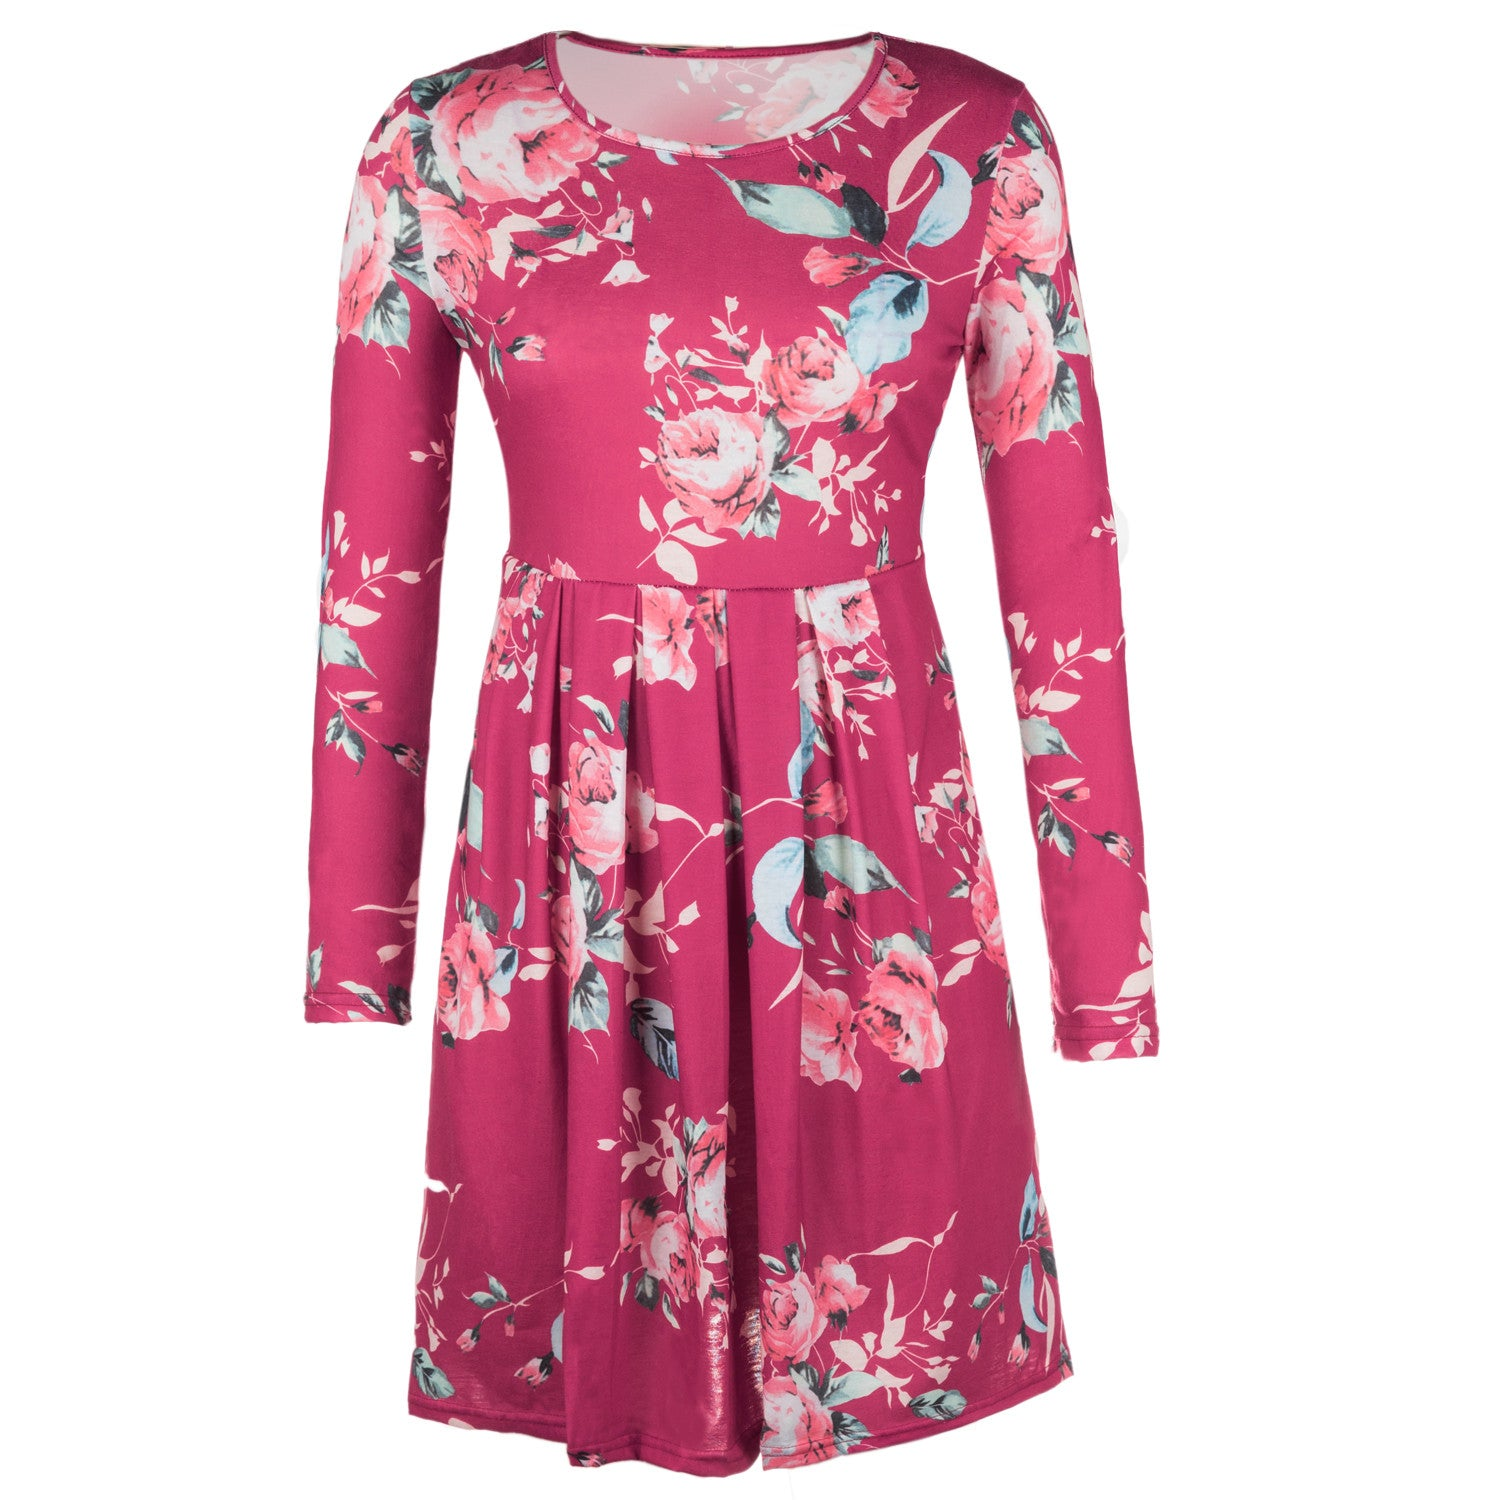 Mini Dresses O Neck Floral Printed Knee-length Dress 2018 Women Long Sleeve Ladies Dresses